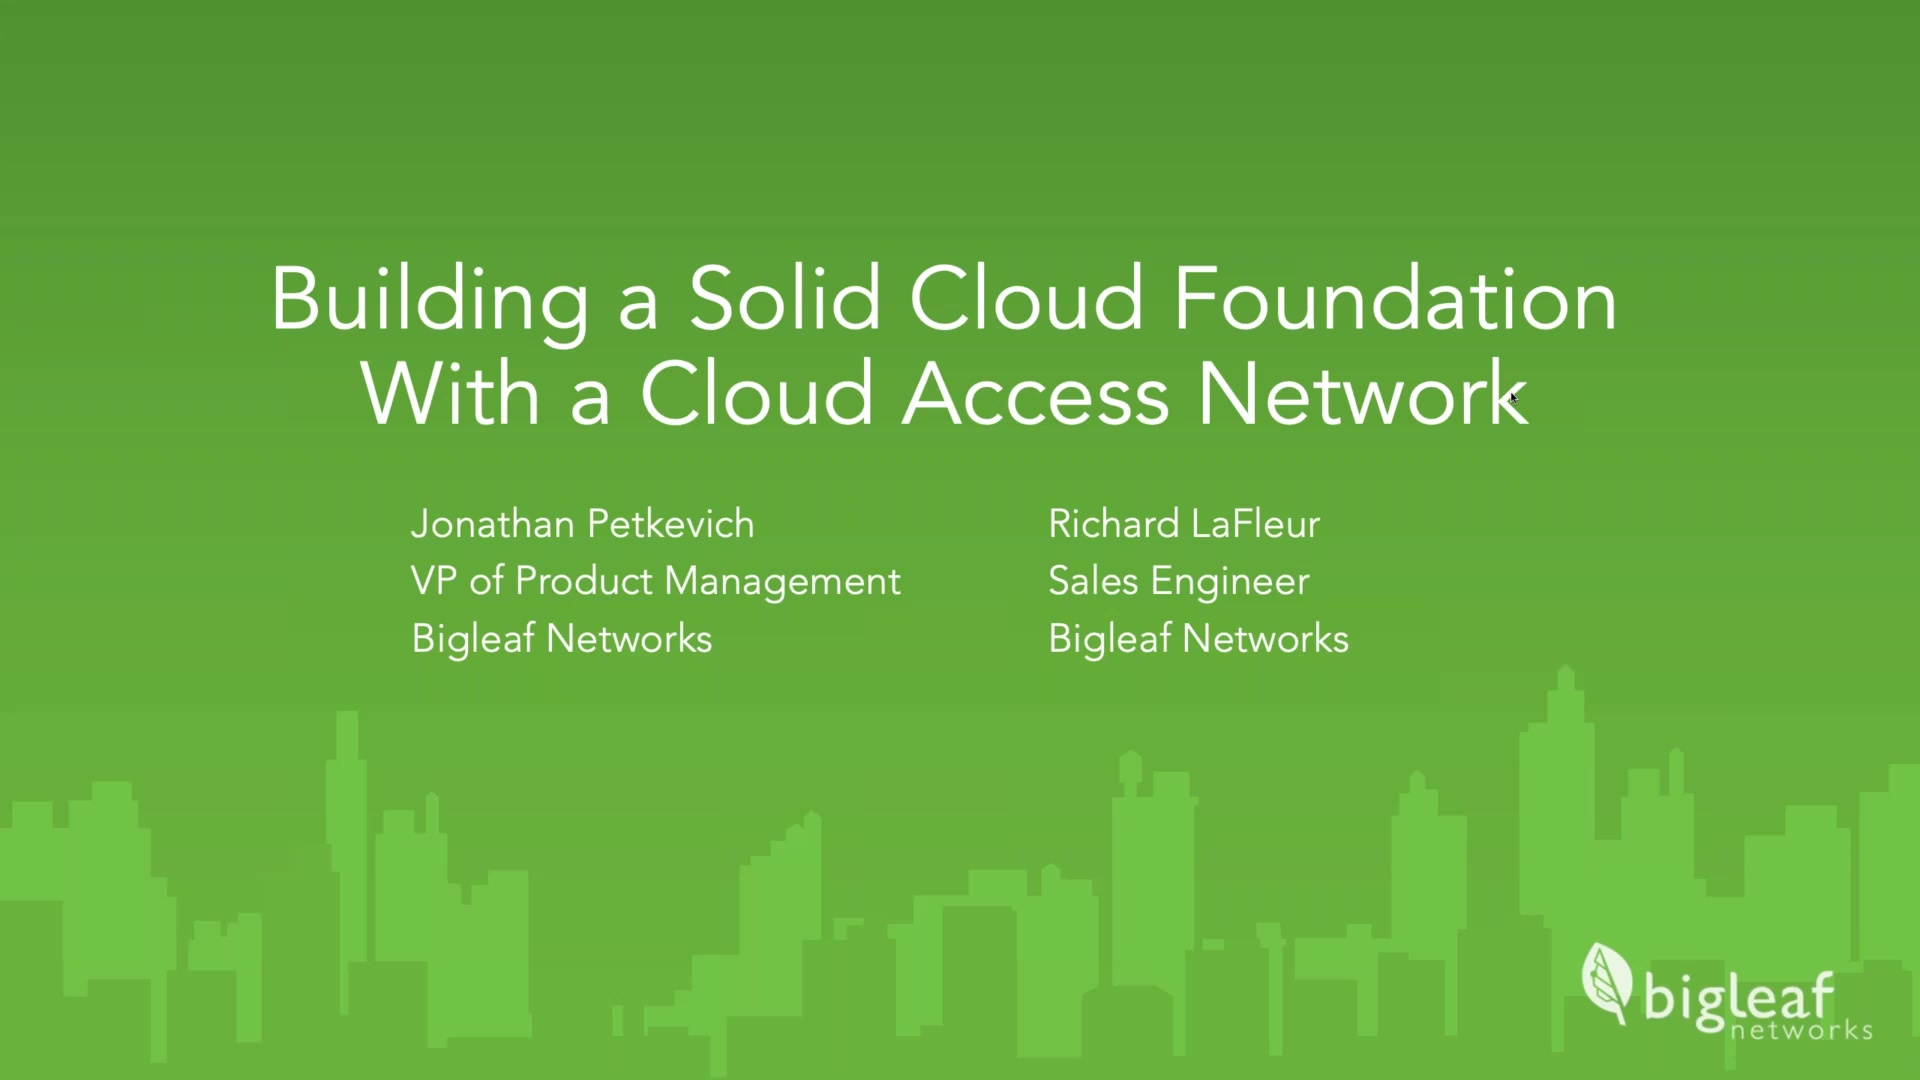 Building a Solid Cloud Foundation with a Cloud Access Network